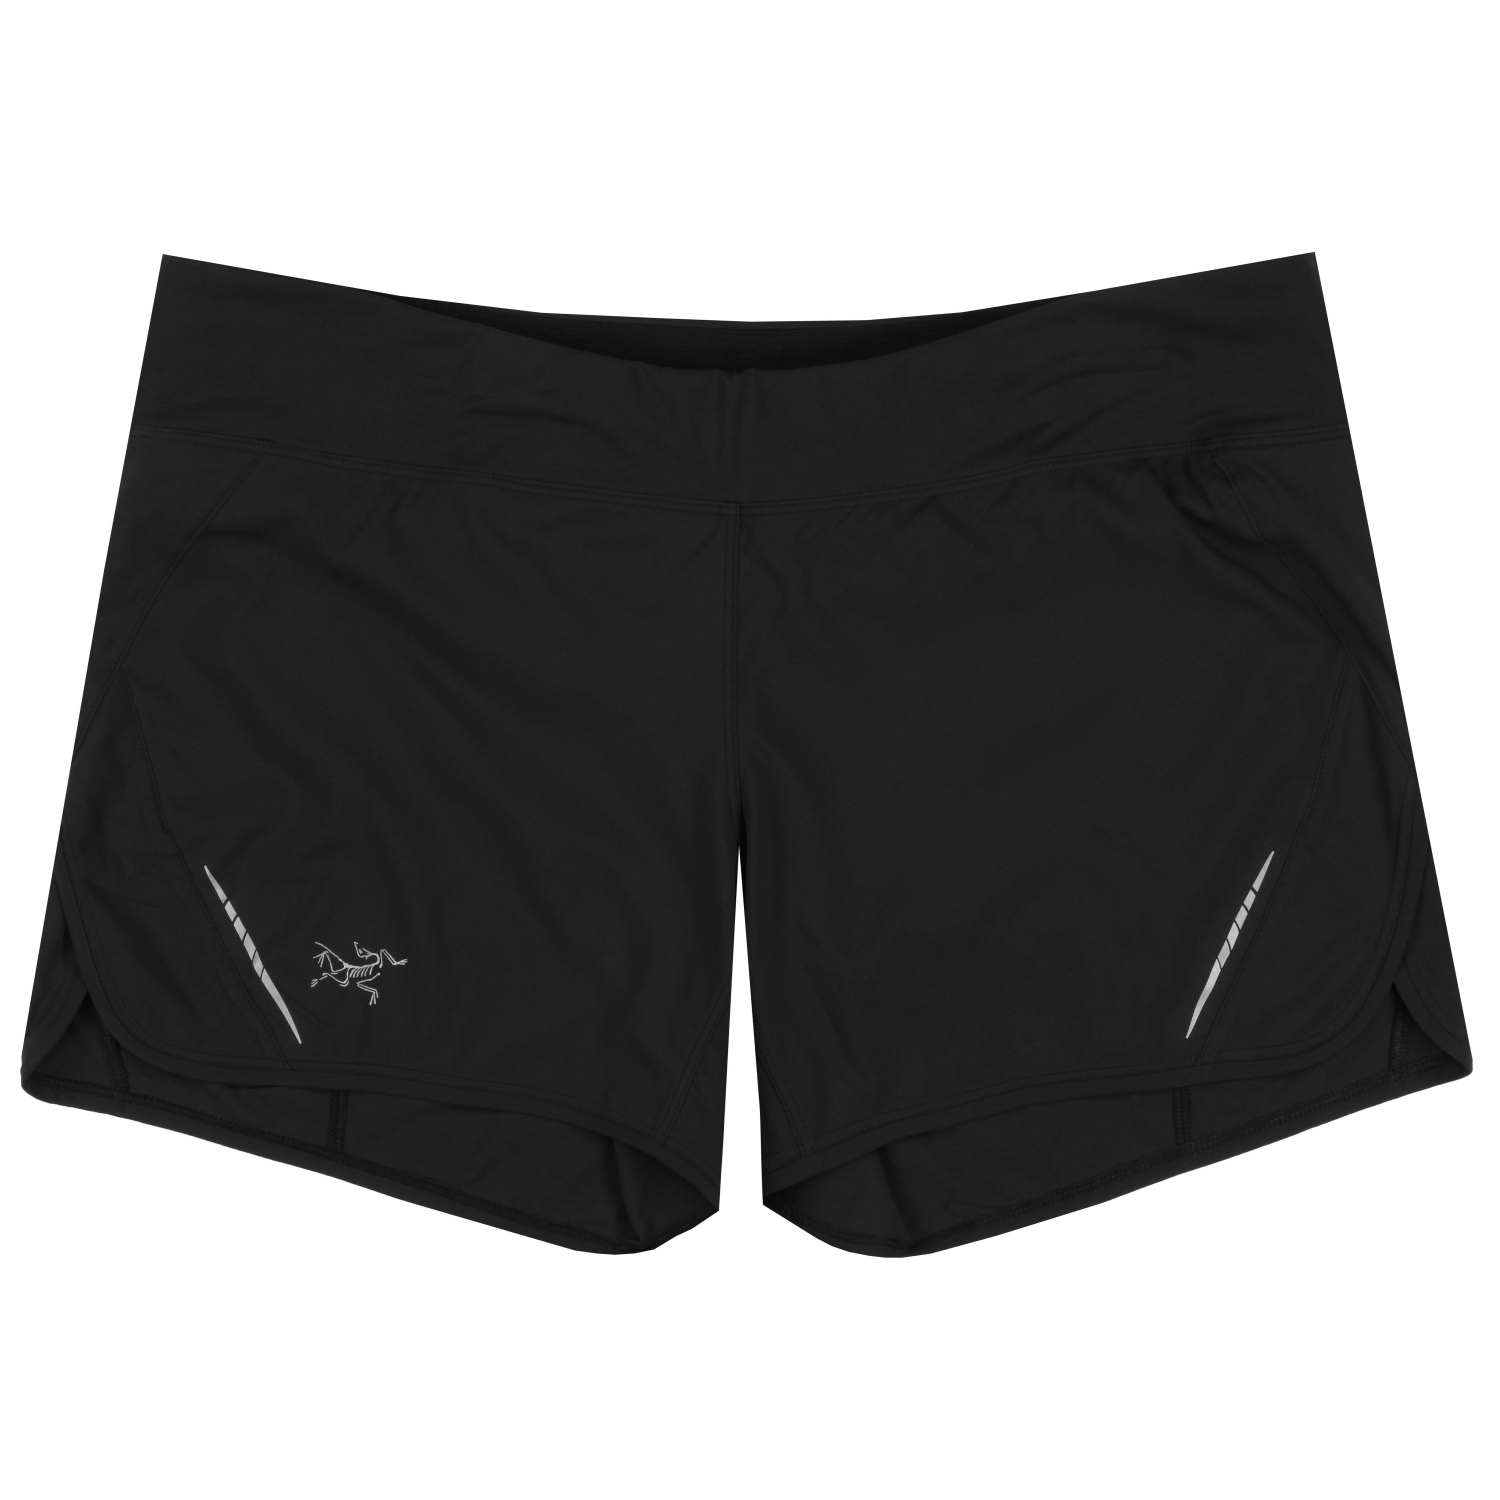 Lyra Short Women's